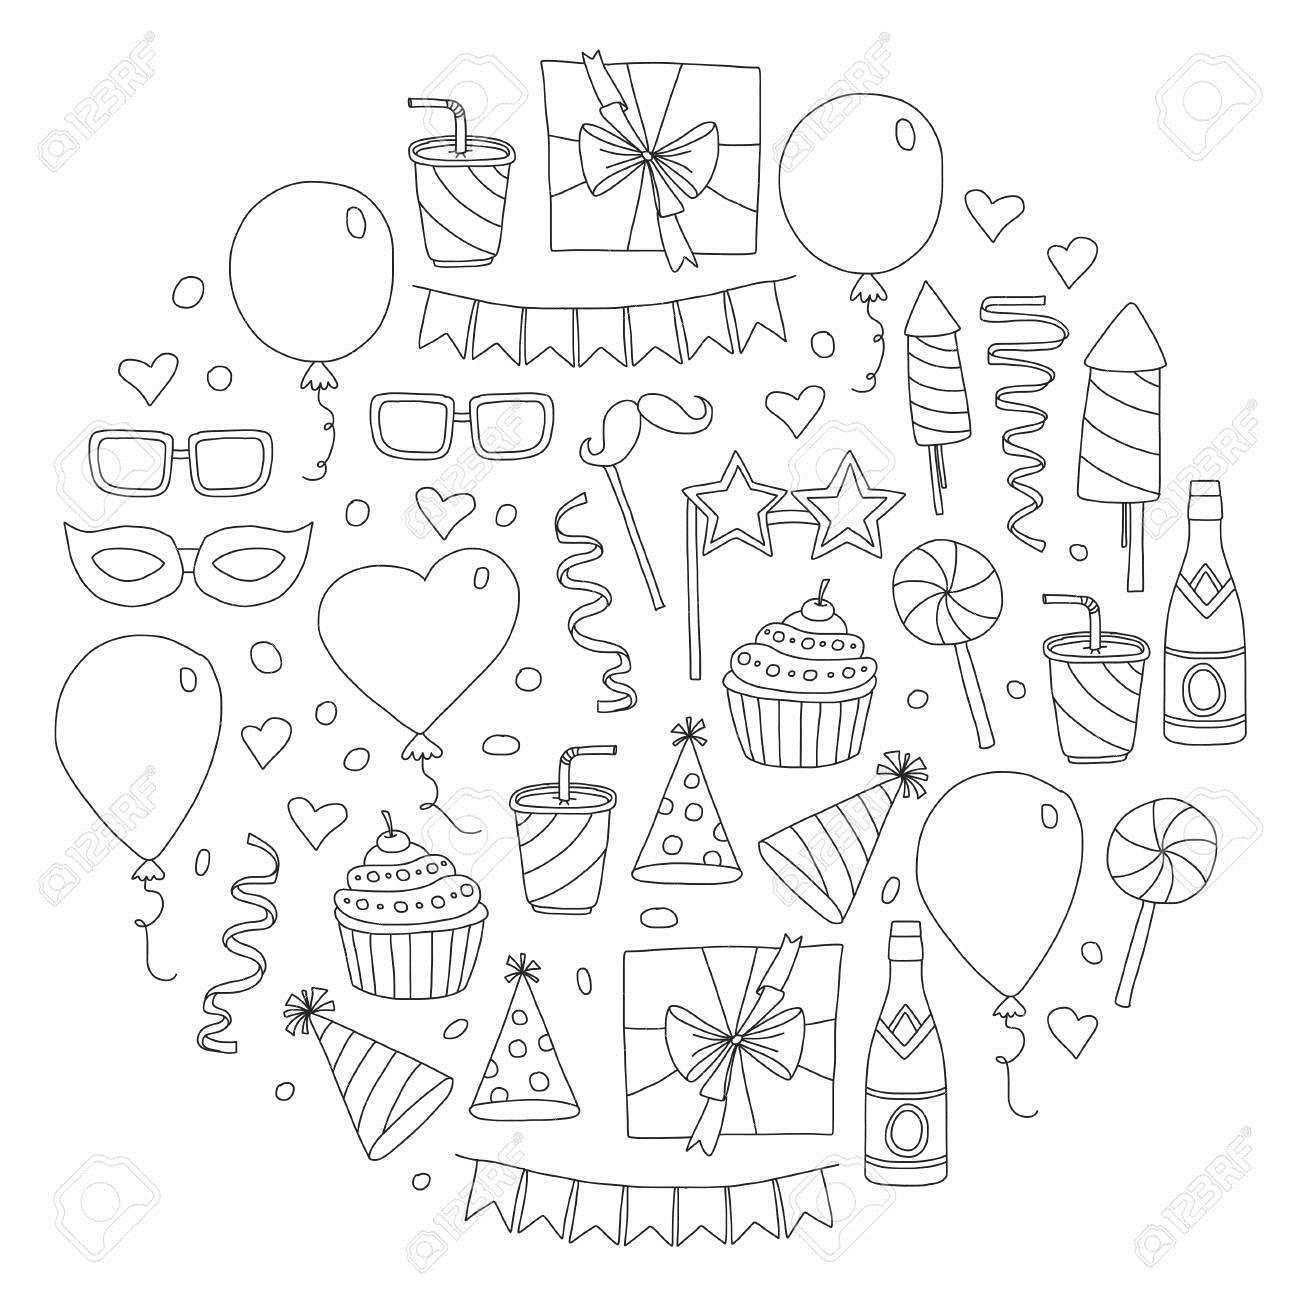 birthday party drawing pictures ; 85817776-set-of-birthday-party-design-elements-kids-drawing-doodle-icons-colorful-balloons-flags-confetti-cup